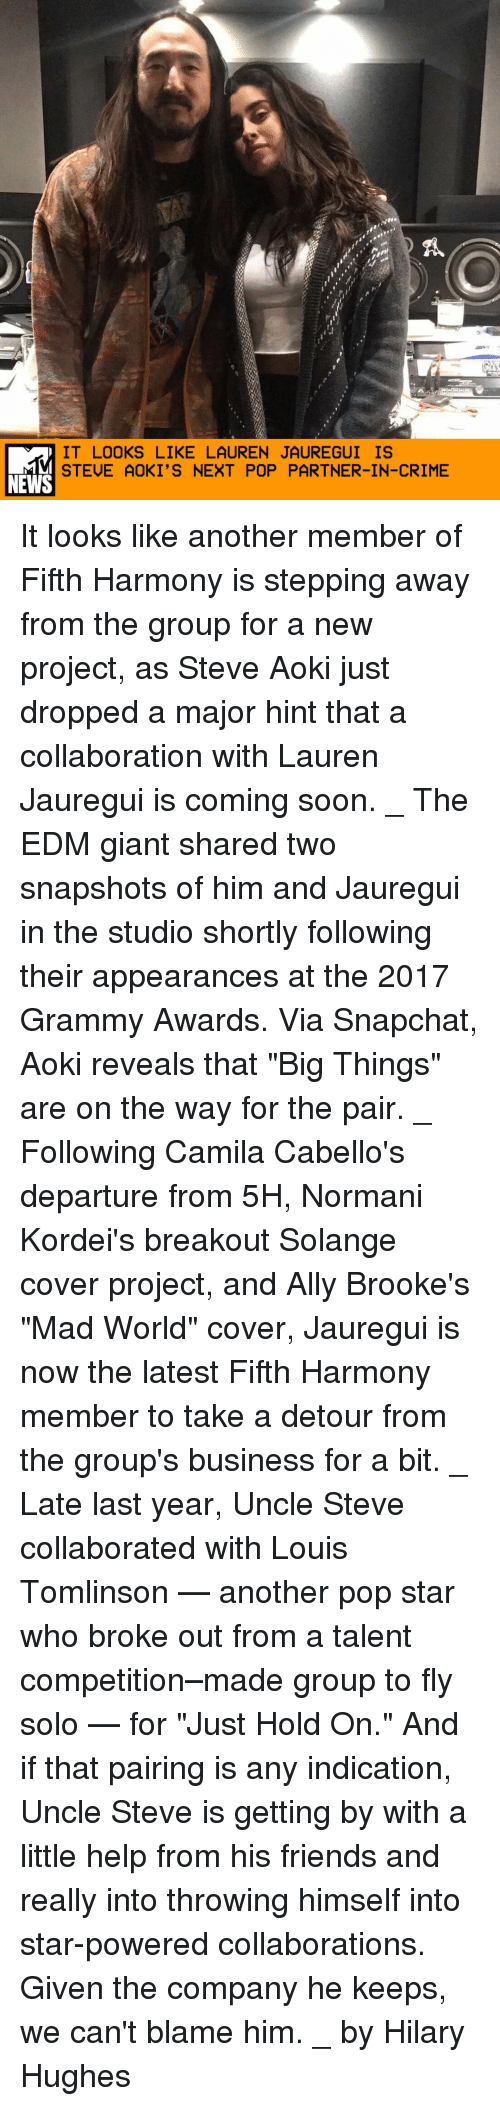 """Crime, Friends, and Grammy Awards: IT LOOKS LIKE LAUREN JAUREGUI IS  STEUE AOKI'S NEXT POP PARTNER-IN-CRIME  NEWS It looks like another member of Fifth Harmony is stepping away from the group for a new project, as Steve Aoki just dropped a major hint that a collaboration with Lauren Jauregui is coming soon. _ The EDM giant shared two snapshots of him and Jauregui in the studio shortly following their appearances at the 2017 Grammy Awards. Via Snapchat, Aoki reveals that """"Big Things"""" are on the way for the pair. _ Following Camila Cabello's departure from 5H, Normani Kordei's breakout Solange cover project, and Ally Brooke's """"Mad World"""" cover, Jauregui is now the latest Fifth Harmony member to take a detour from the group's business for a bit. _ Late last year, Uncle Steve collaborated with Louis Tomlinson — another pop star who broke out from a talent competition–made group to fly solo — for """"Just Hold On."""" And if that pairing is any indication, Uncle Steve is getting by with a little help from his friends and really into throwing himself into star-powered collaborations. Given the company he keeps, we can't blame him. _ by Hilary Hughes"""